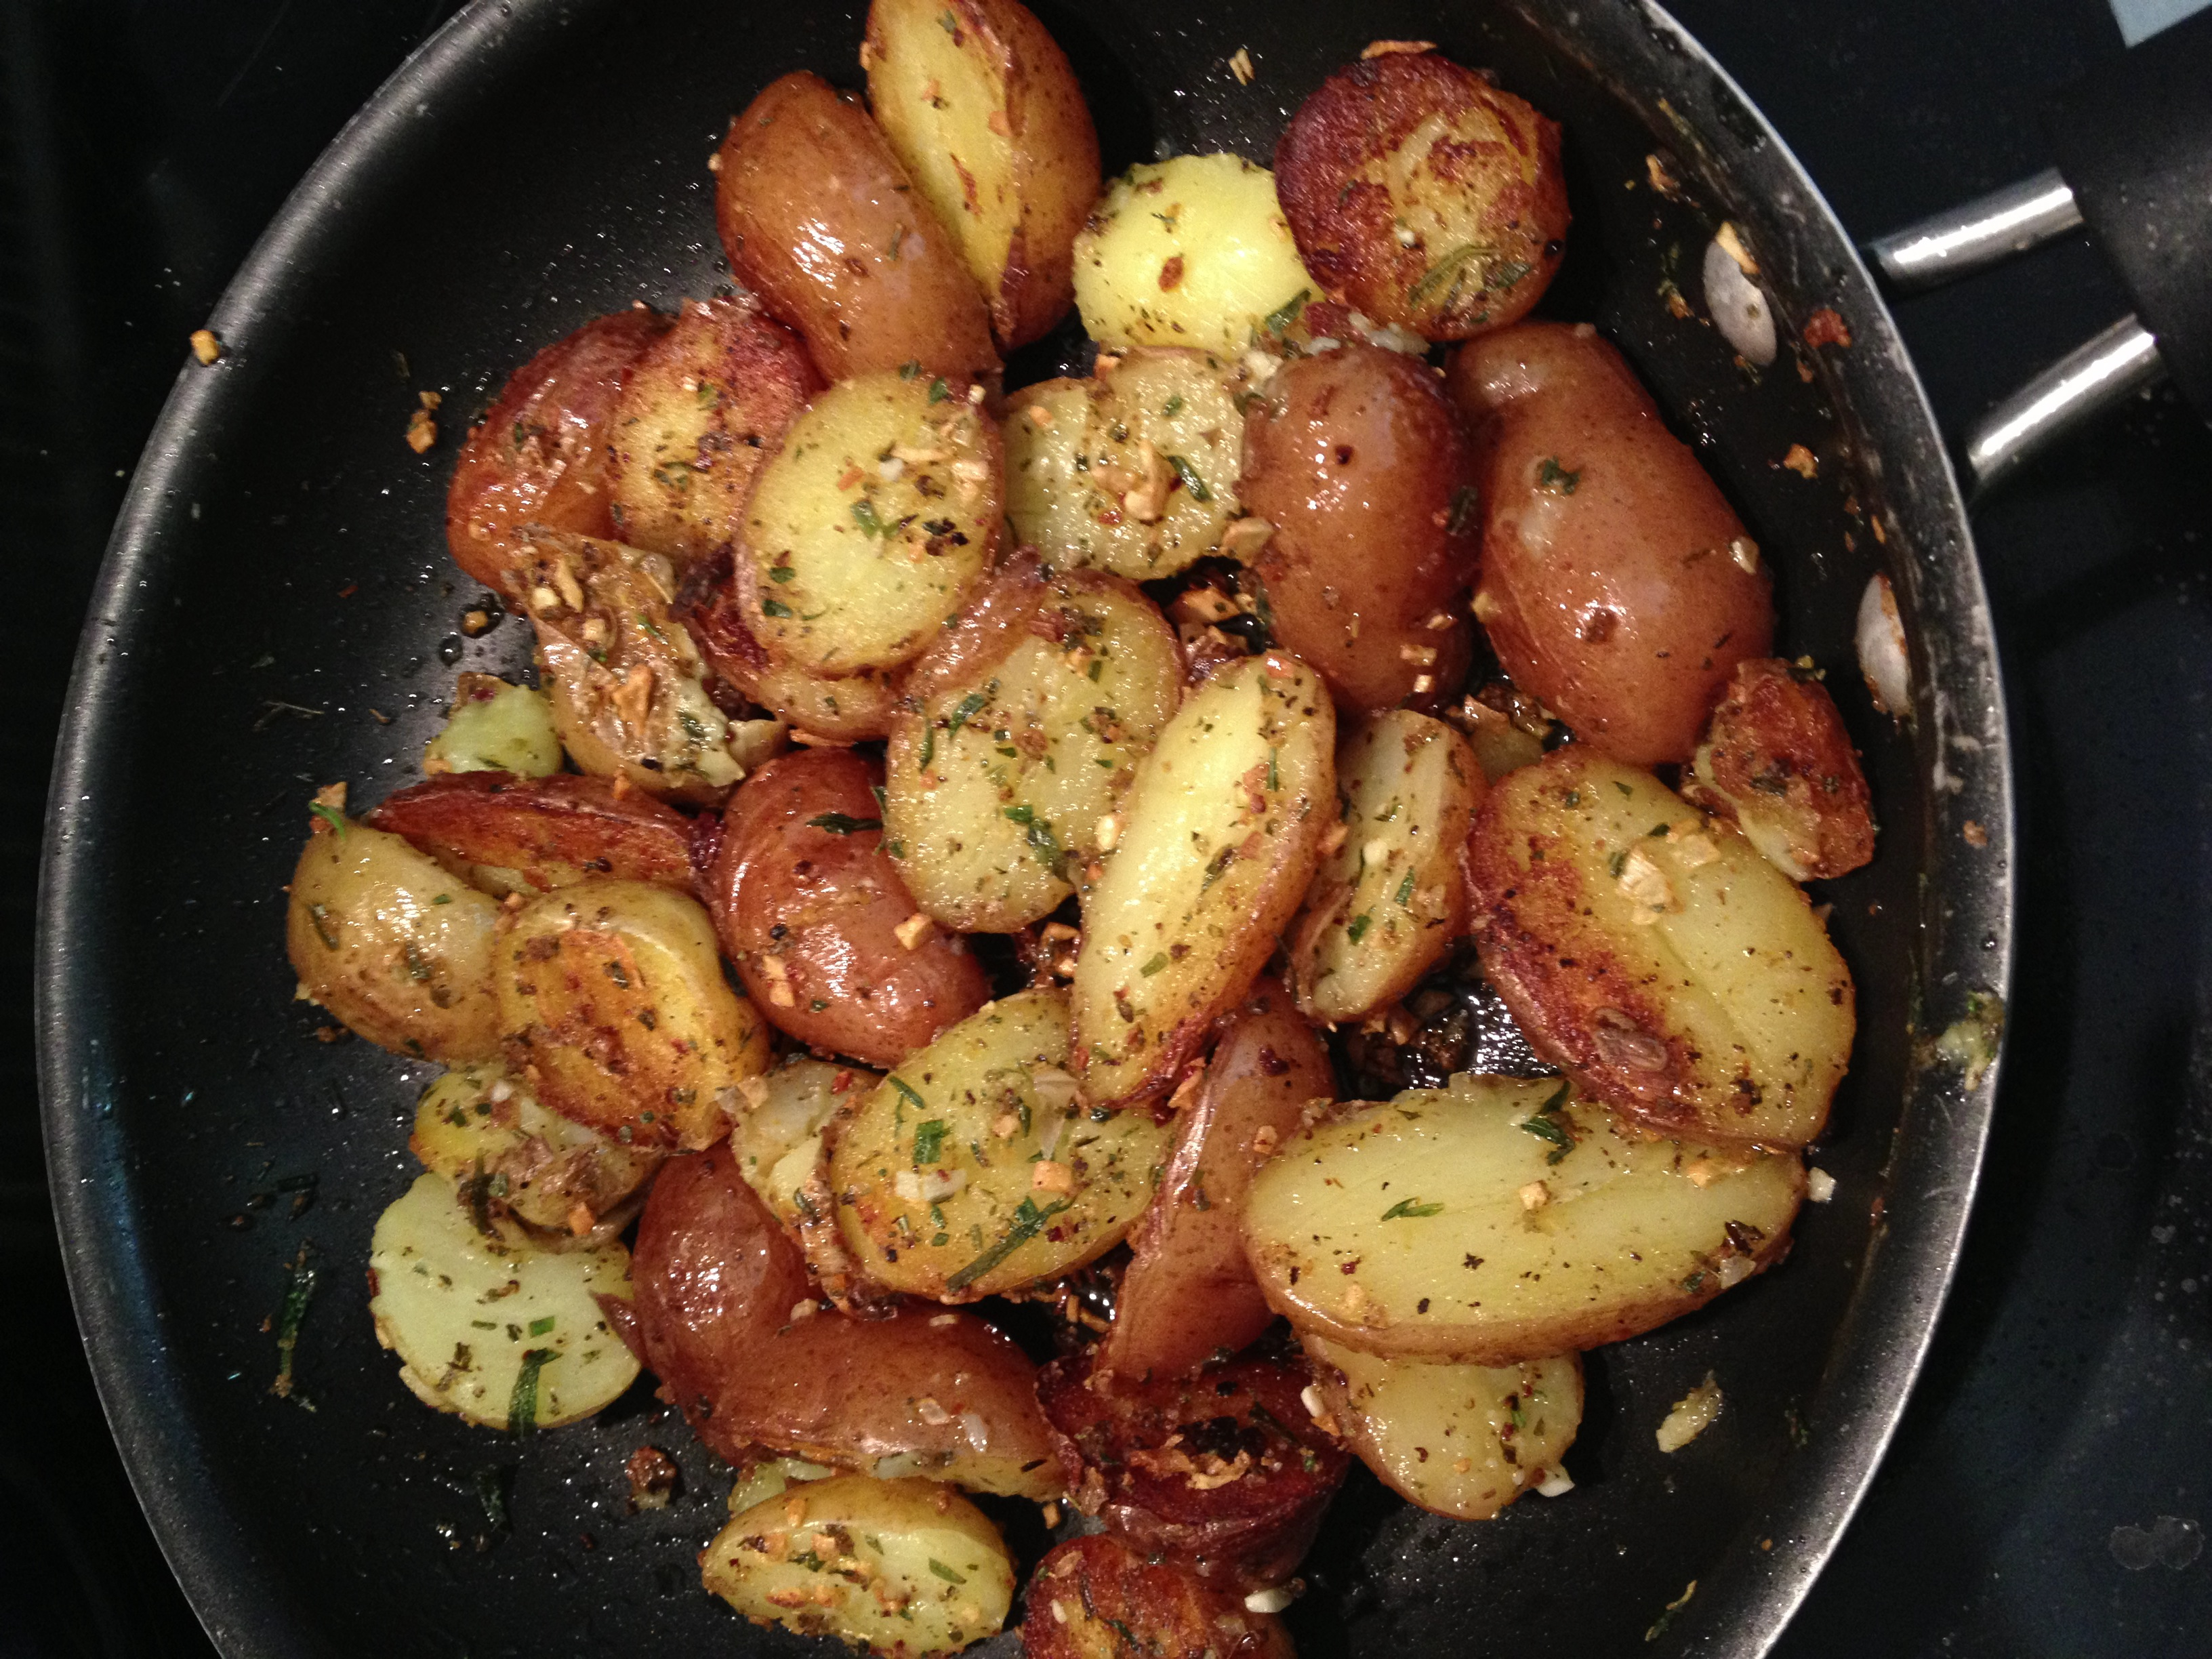 Most of the time I like to do roasted potatoes with rosemary and olive oil but when time is short that is something you can do it.